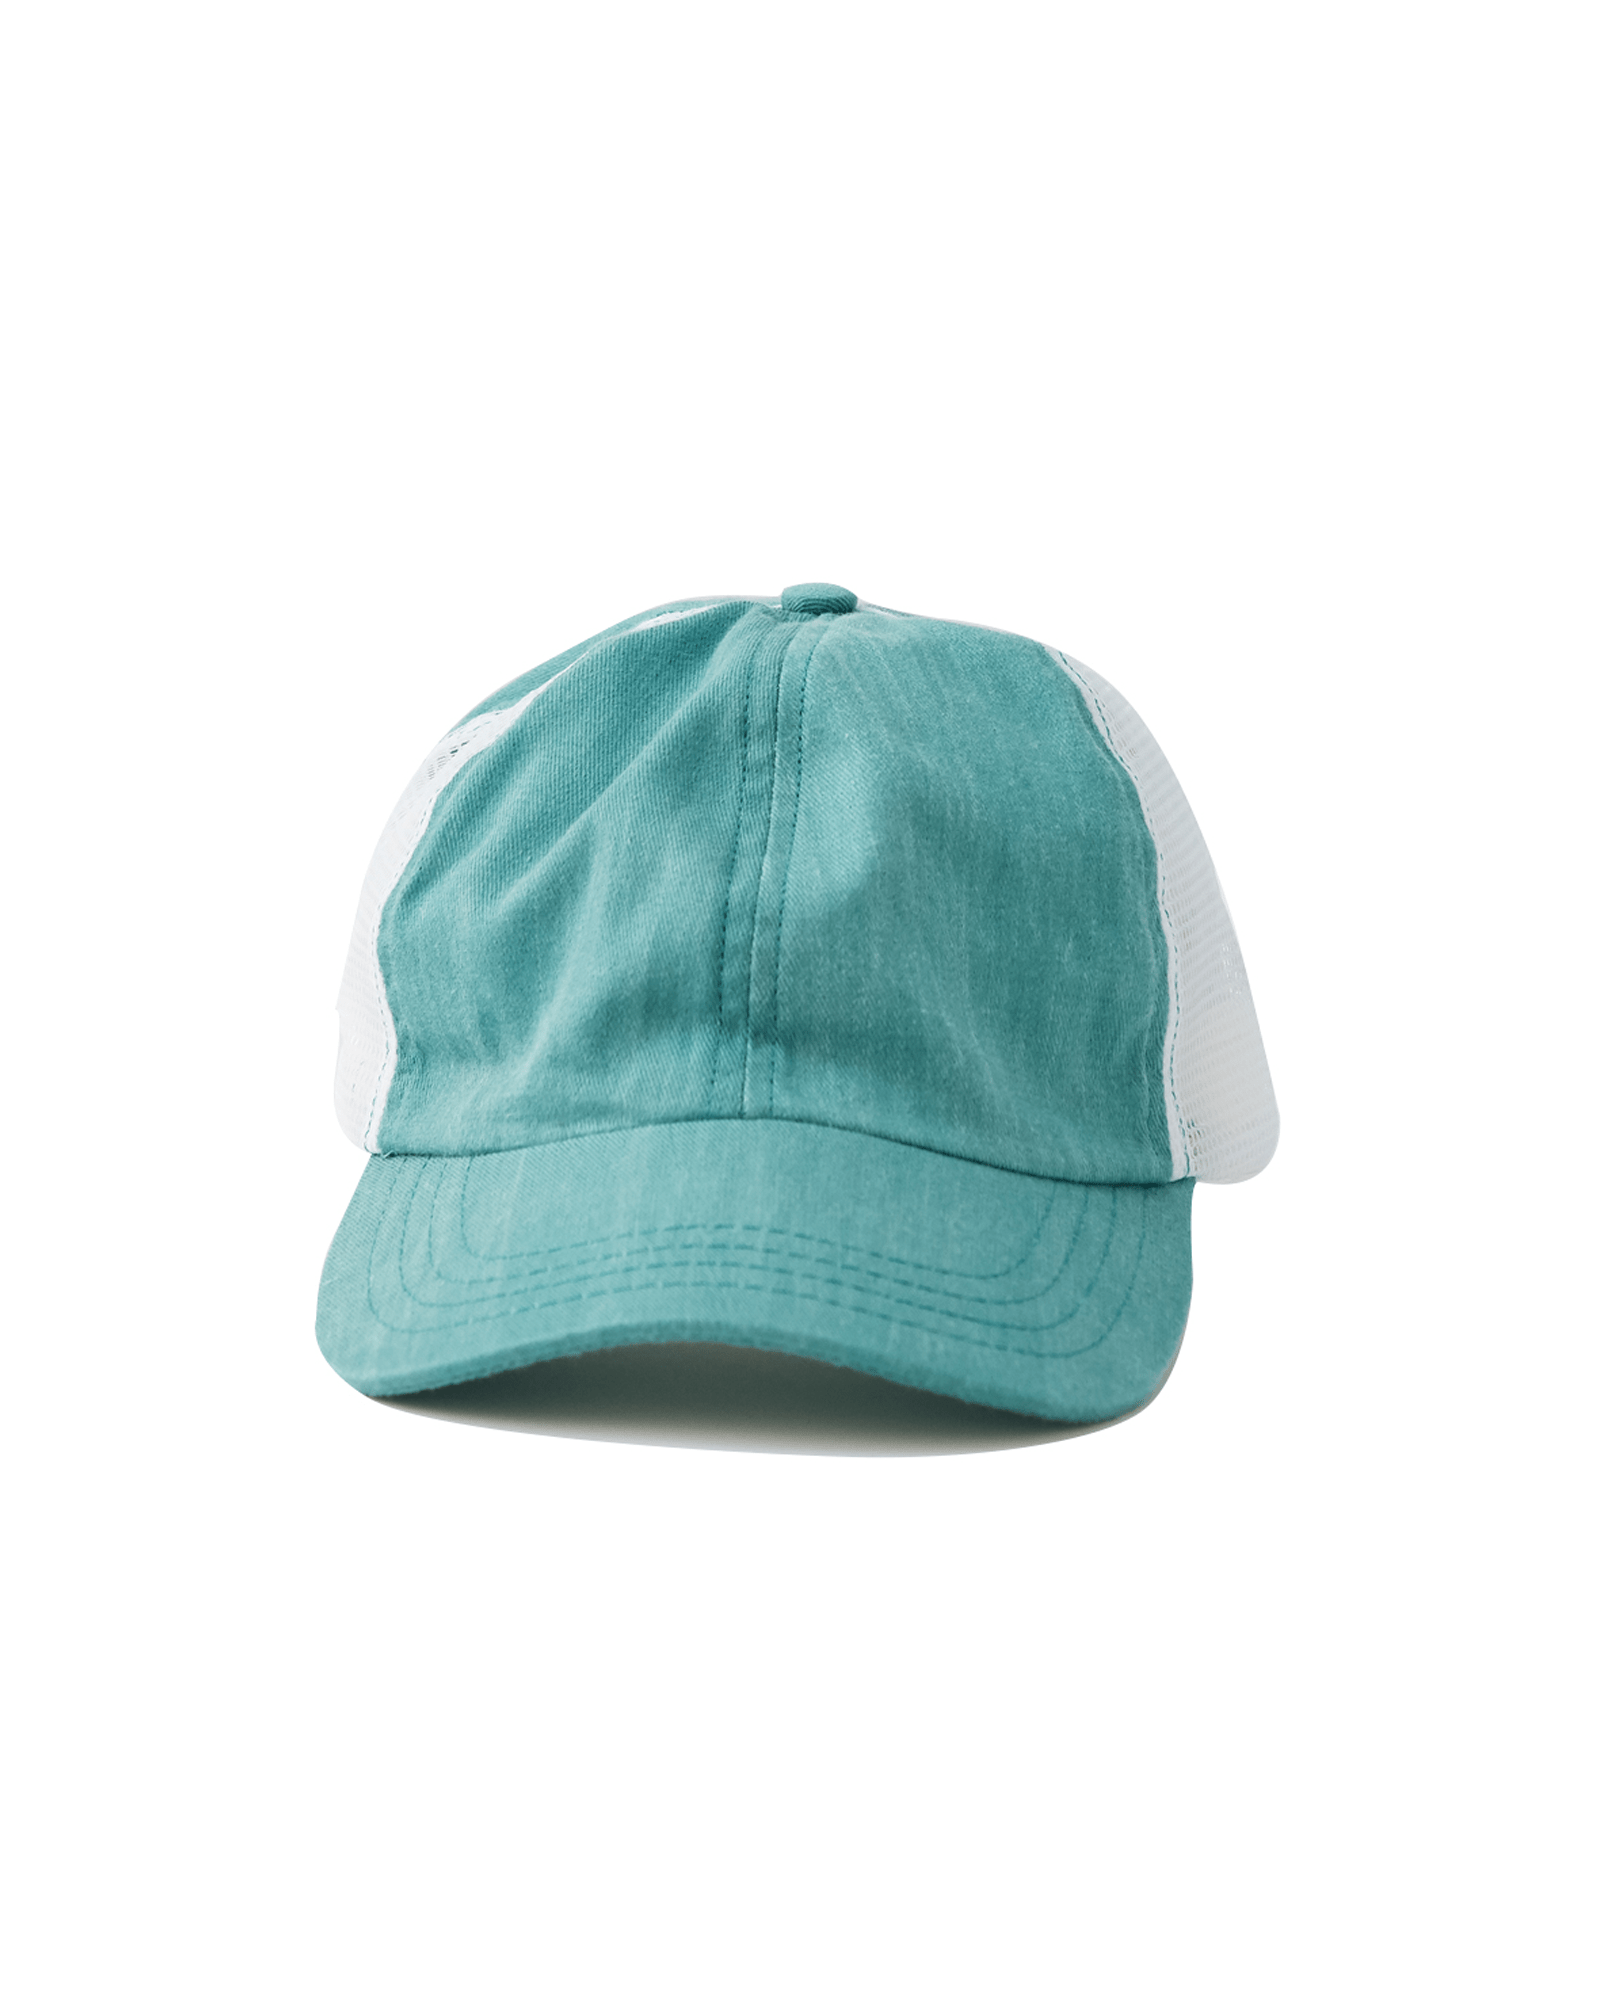 Teal Vented Trucker Cap